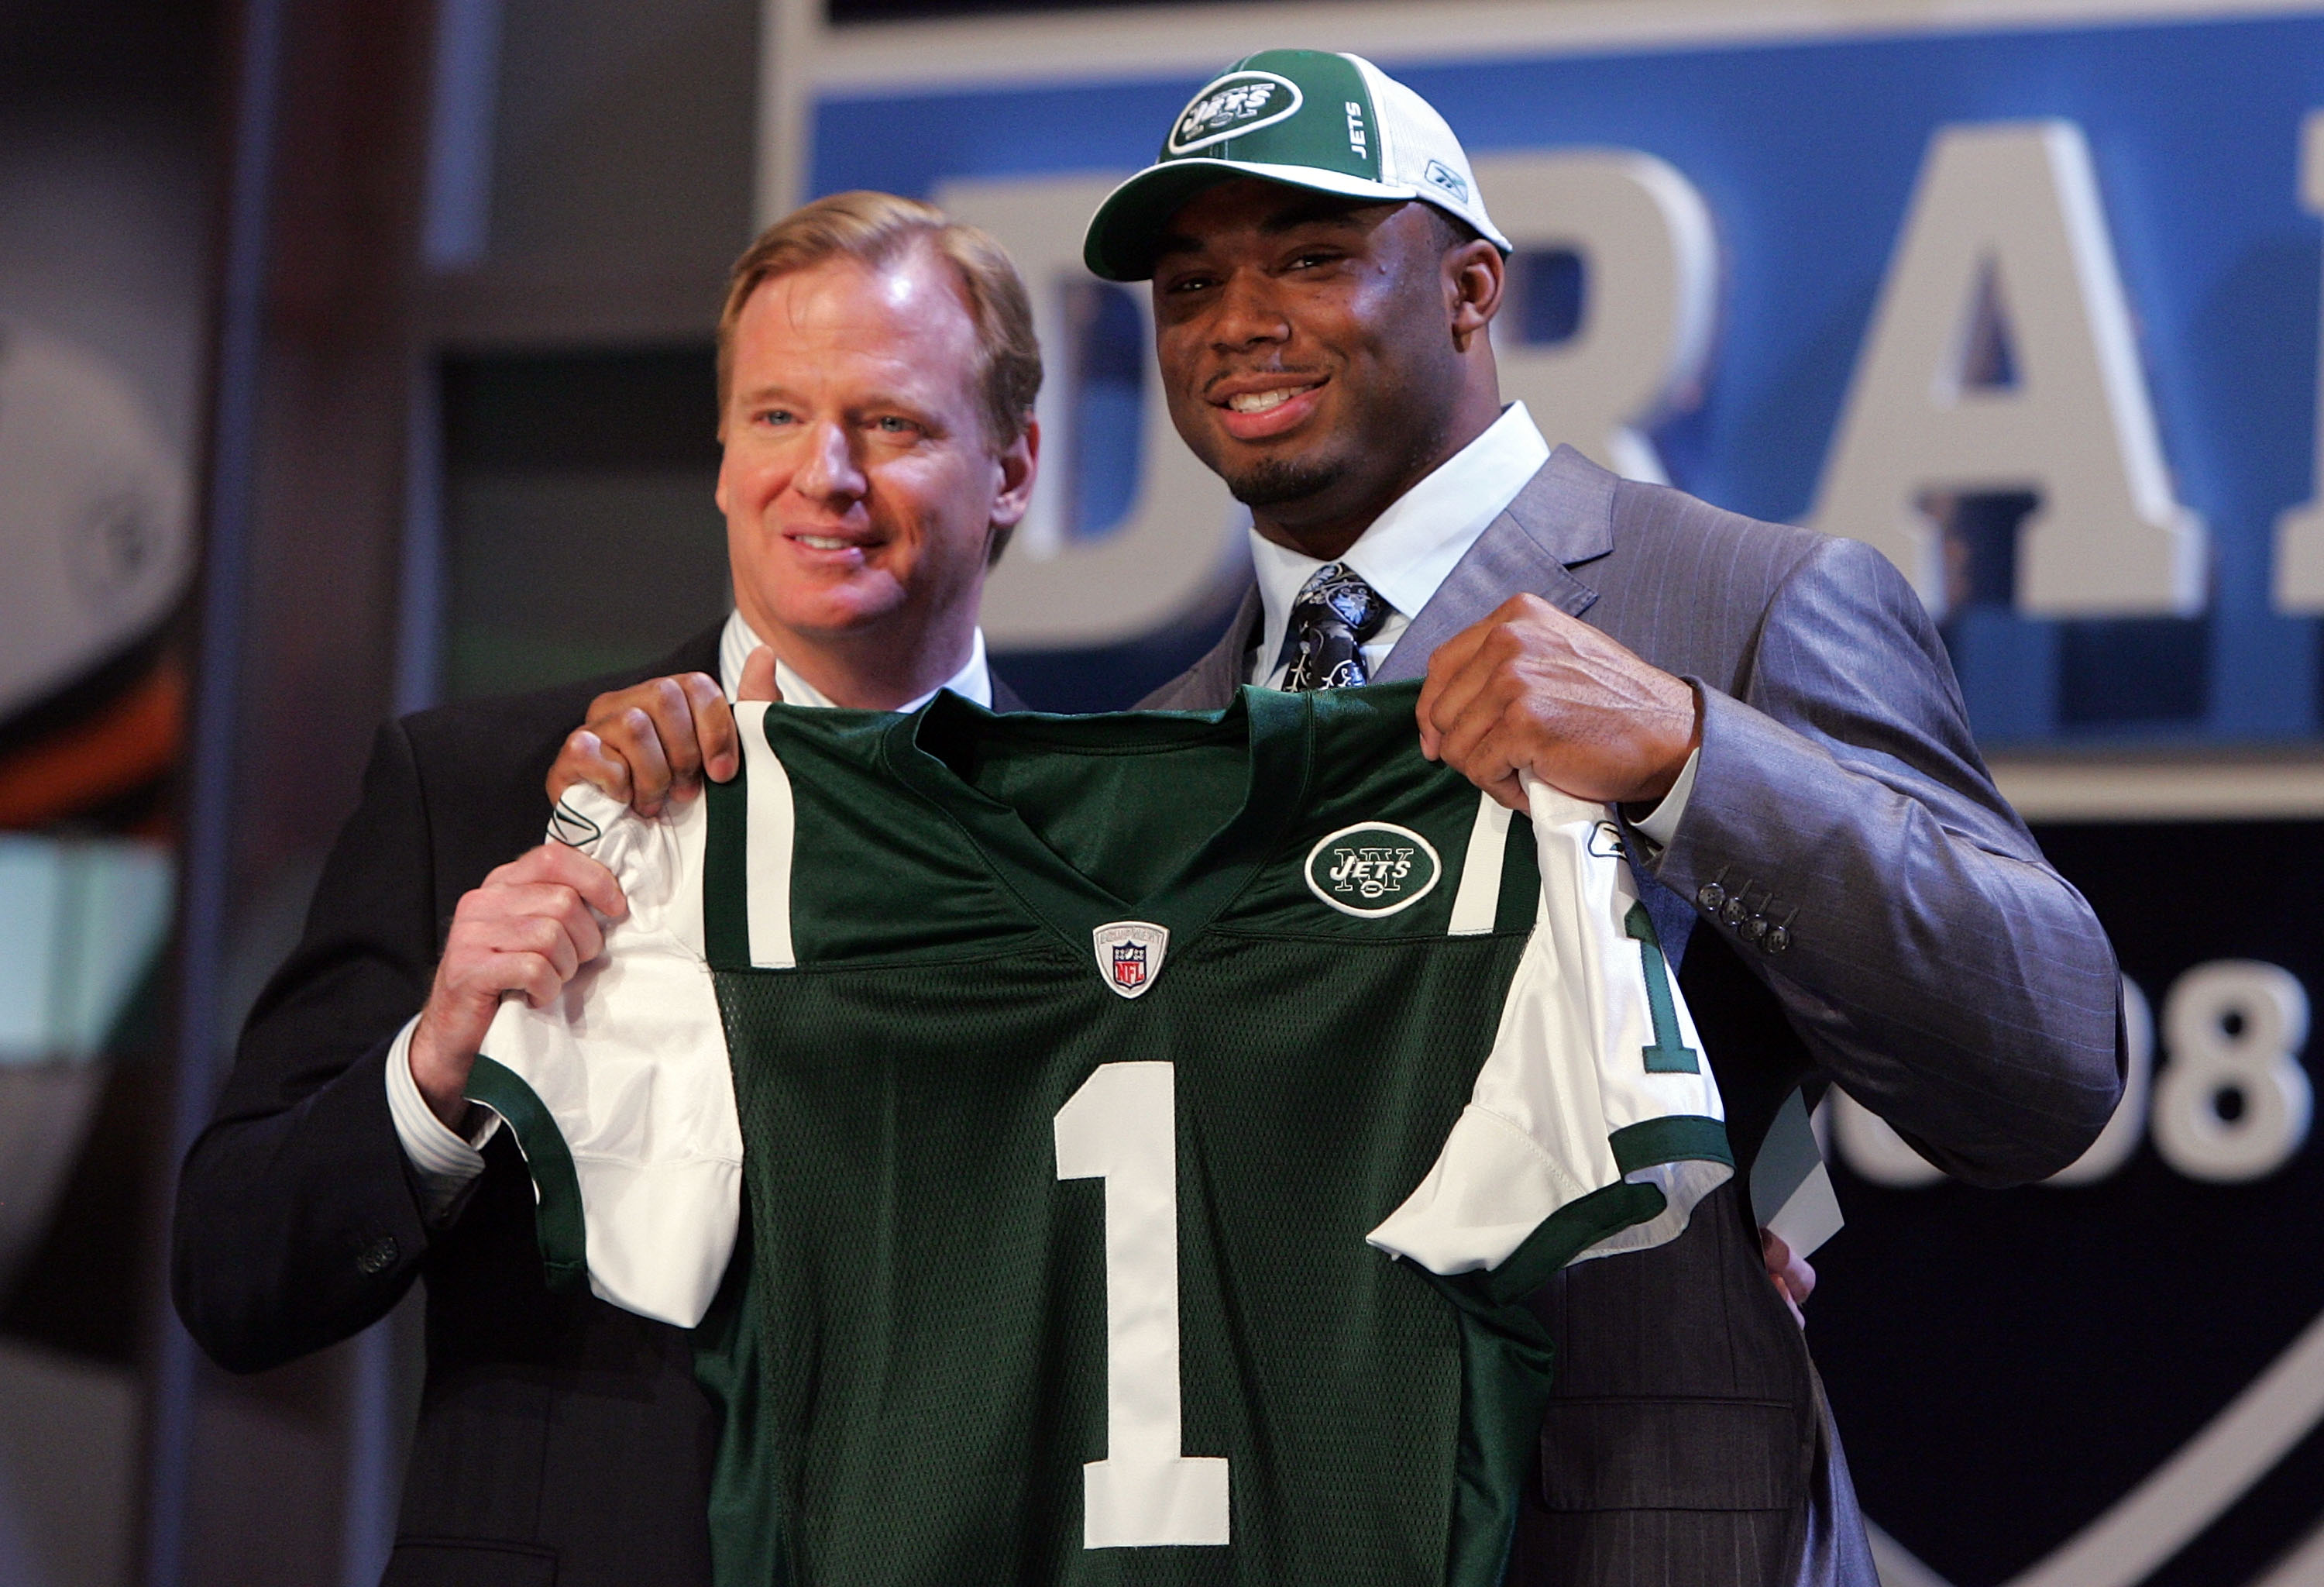 NEW YORK - APRIL 26:  Vernon Gholston poses for a photo after being selected as the sixth overall pick by the New York Jets with National Football League Commissioner Roger Goodell during the 2008 NFL Draft on April 26, 2008 at Radio City Music Hall in Ap